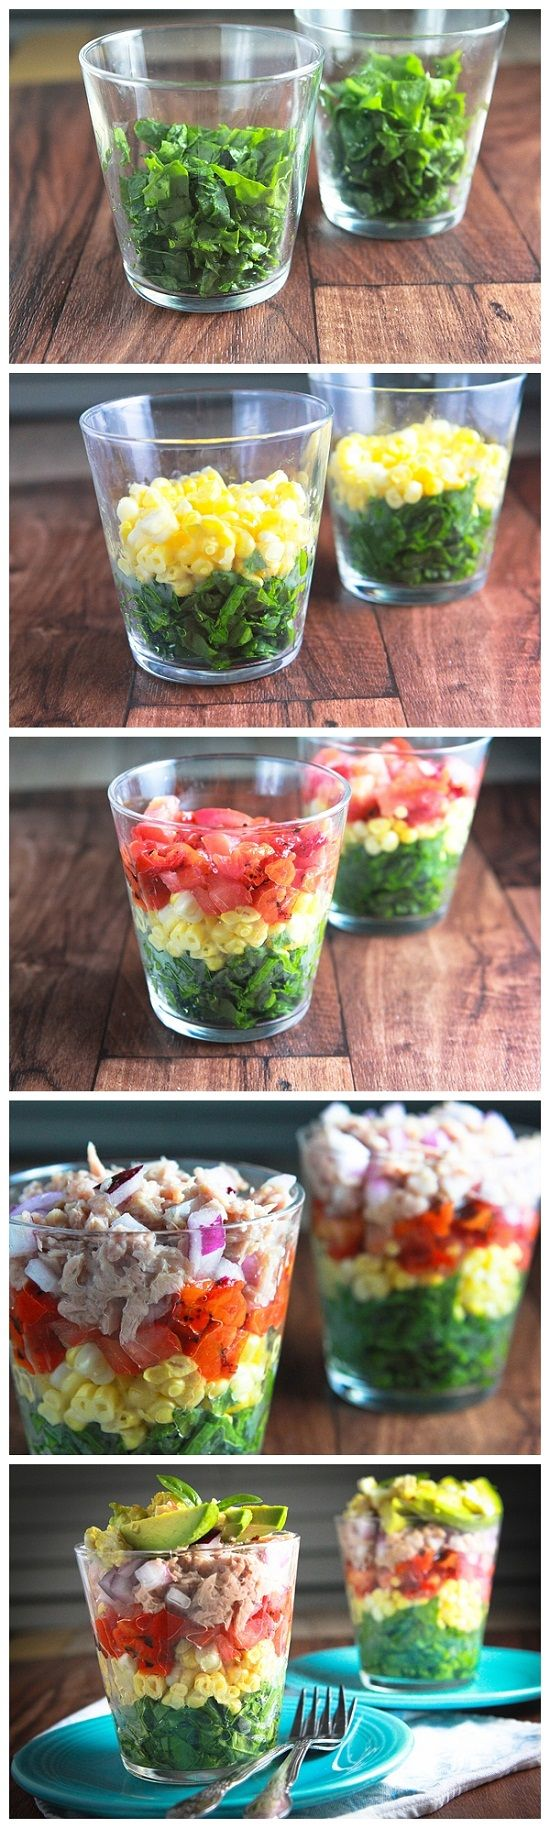 Rainbow Salad in a Glass